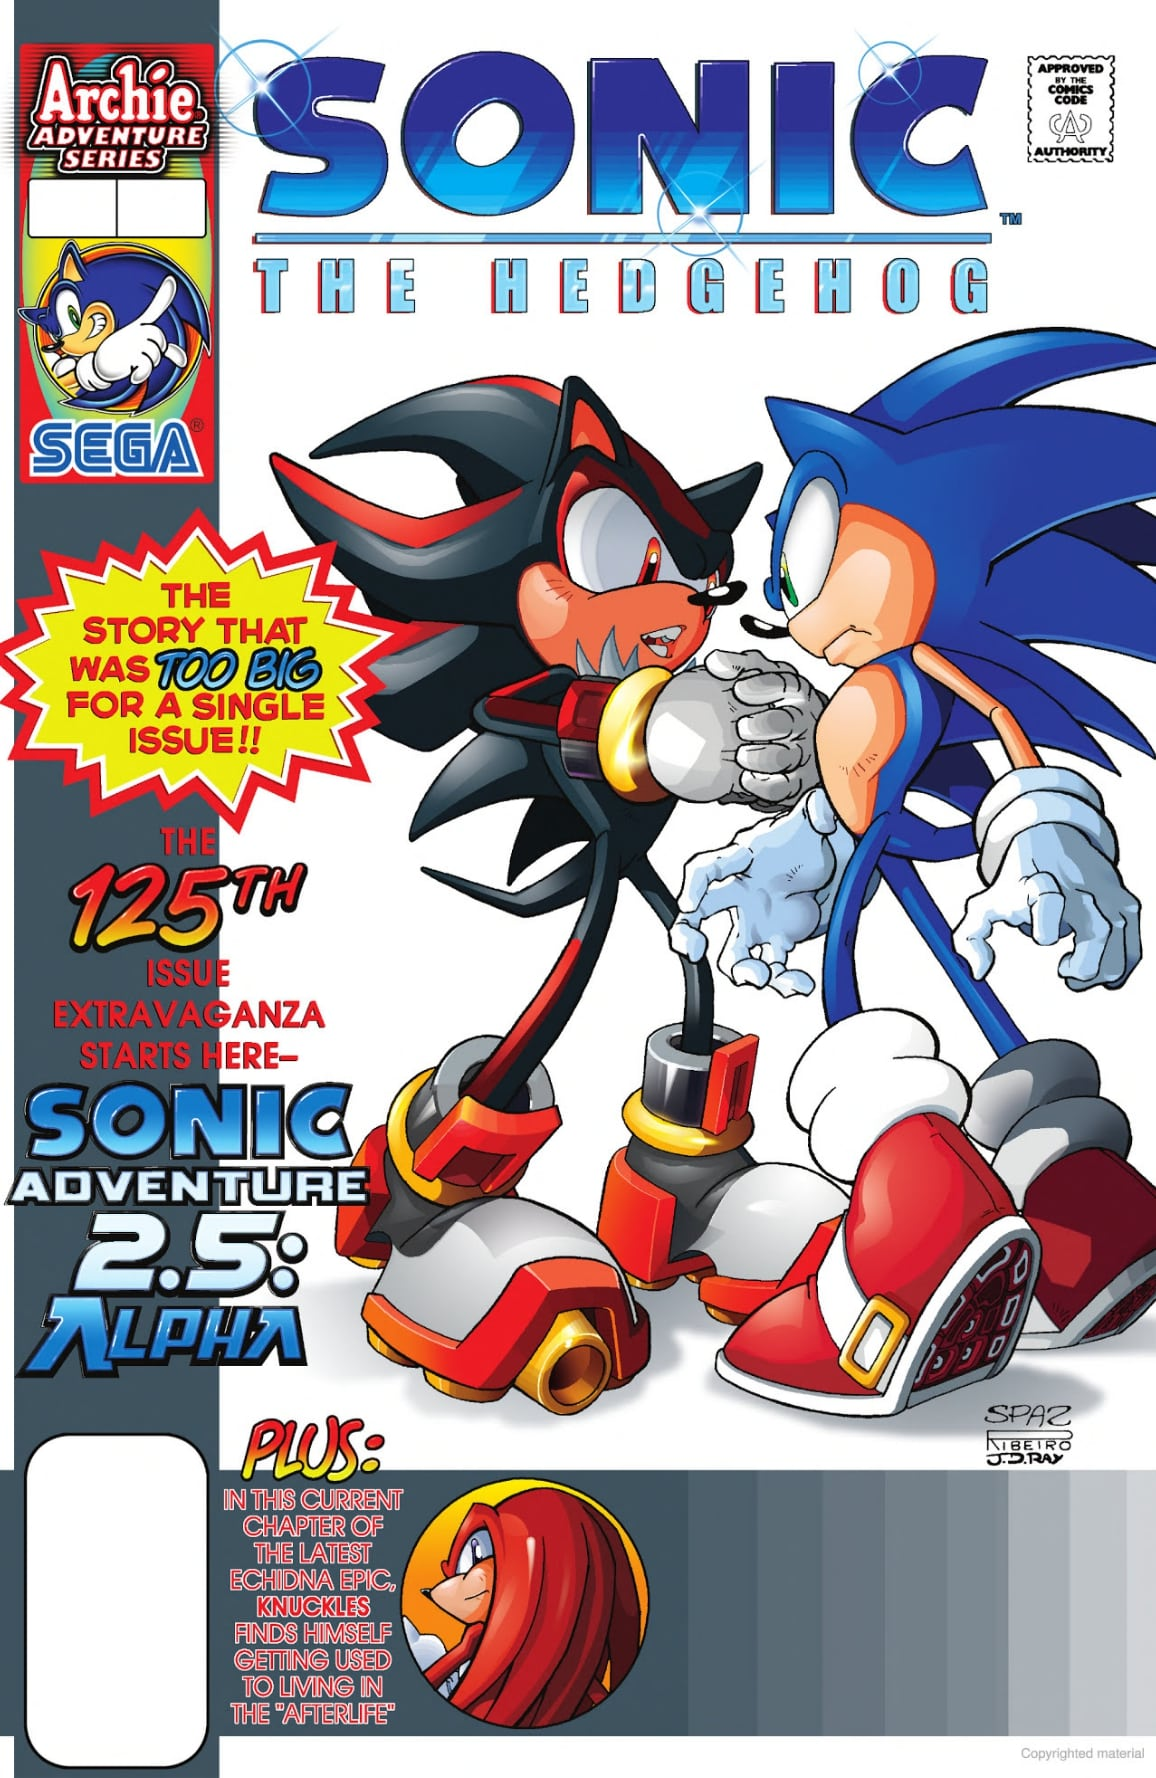 Archie Sonic the Hedgehog Issue 124 | Mobius Encyclopaedia